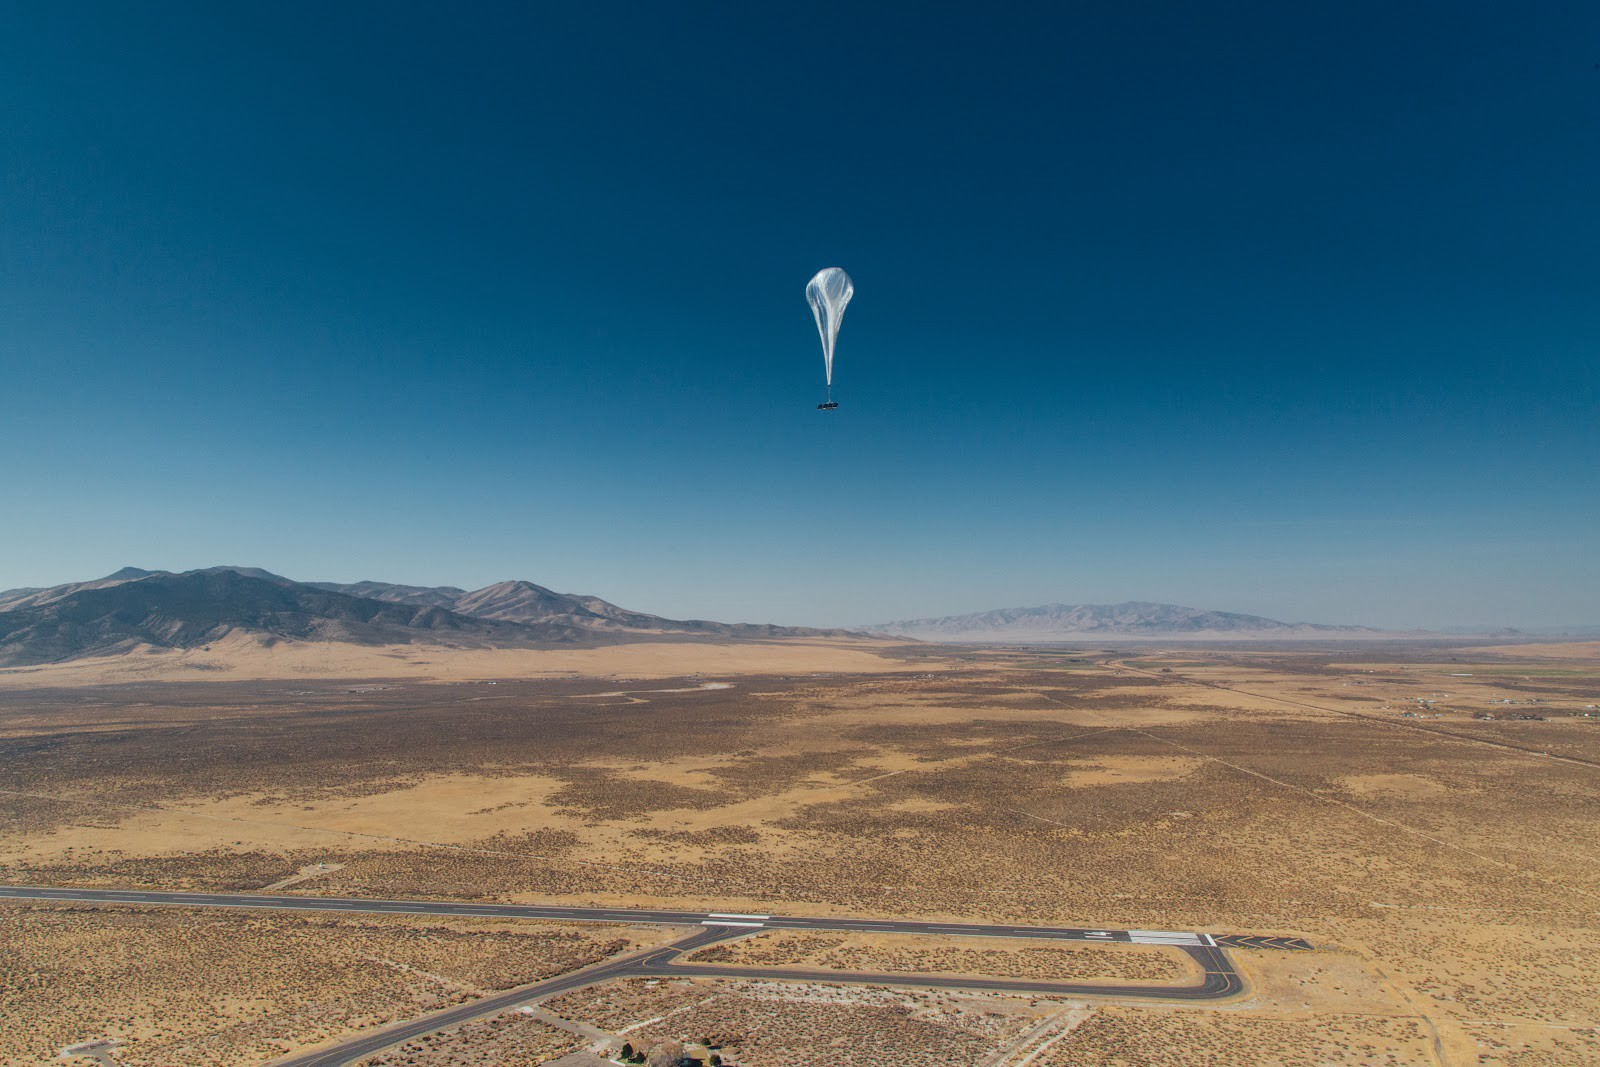 A Loon balloon on its way to Puerto Rico from Nevada.